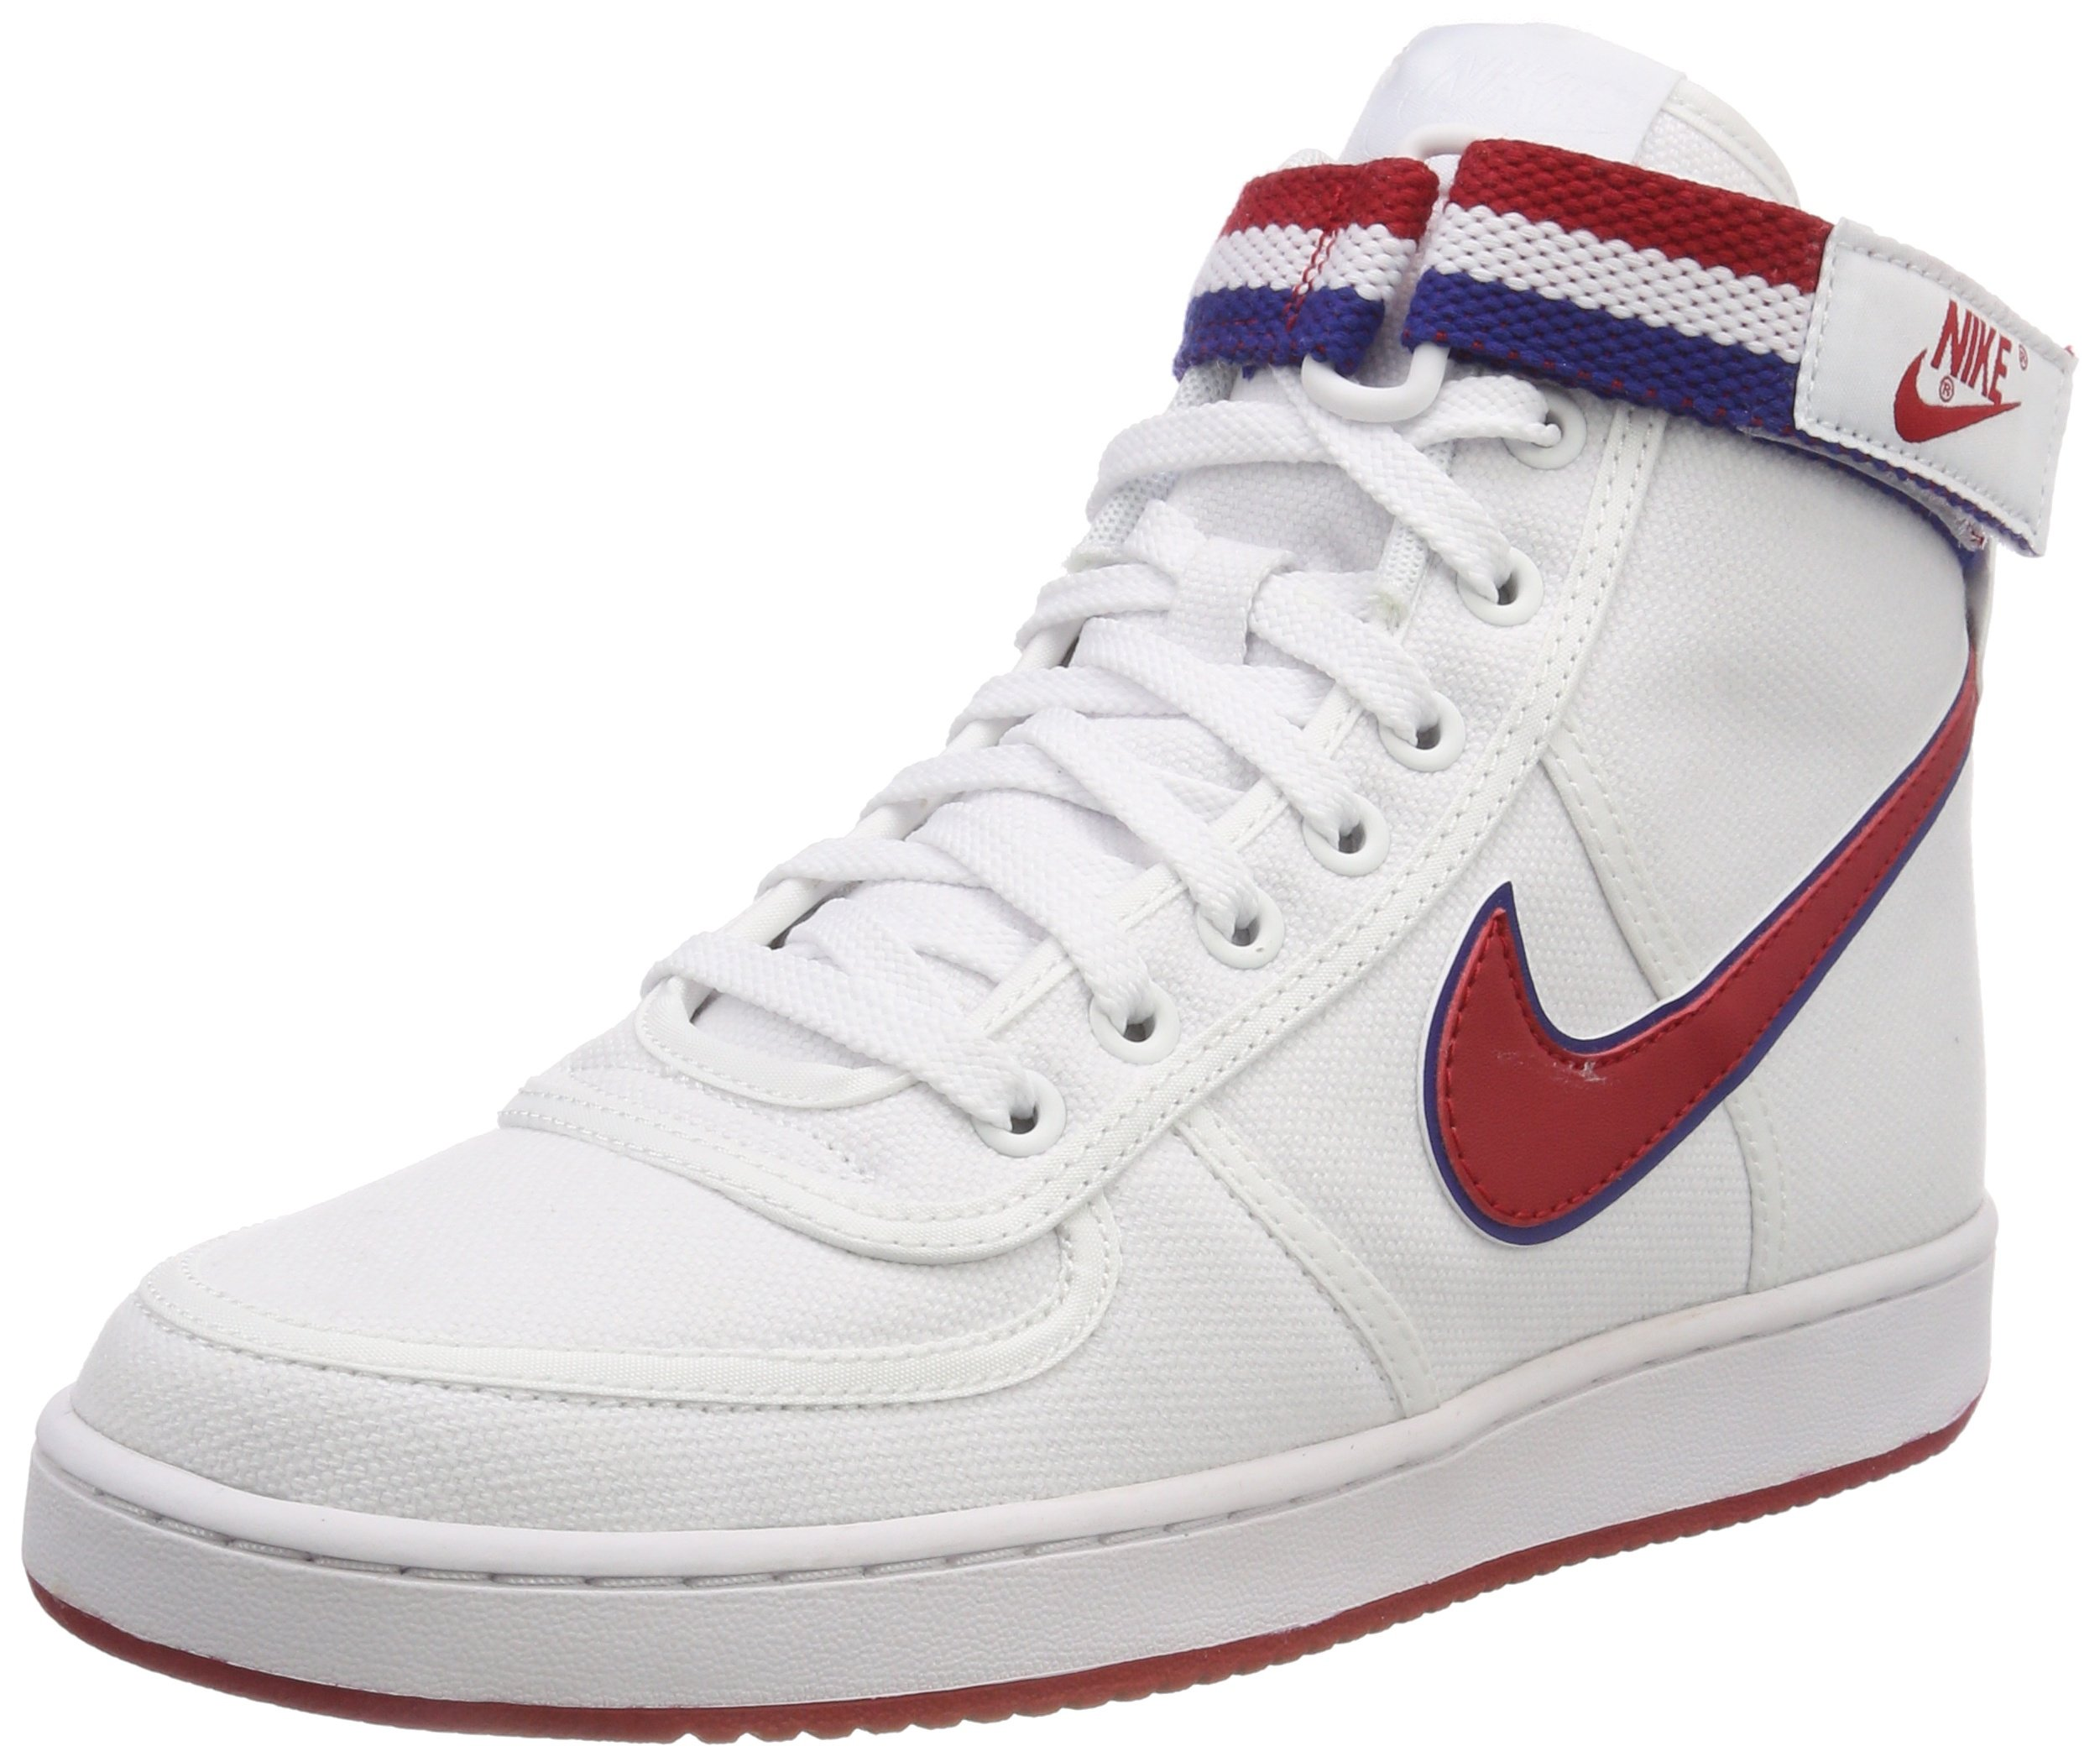 b53659bacb09 Galleon - NIKE Vandal High Supreme Men s Sneakers White Gym-Red Royal Blue  318330-101 (10.5 D(M) US)